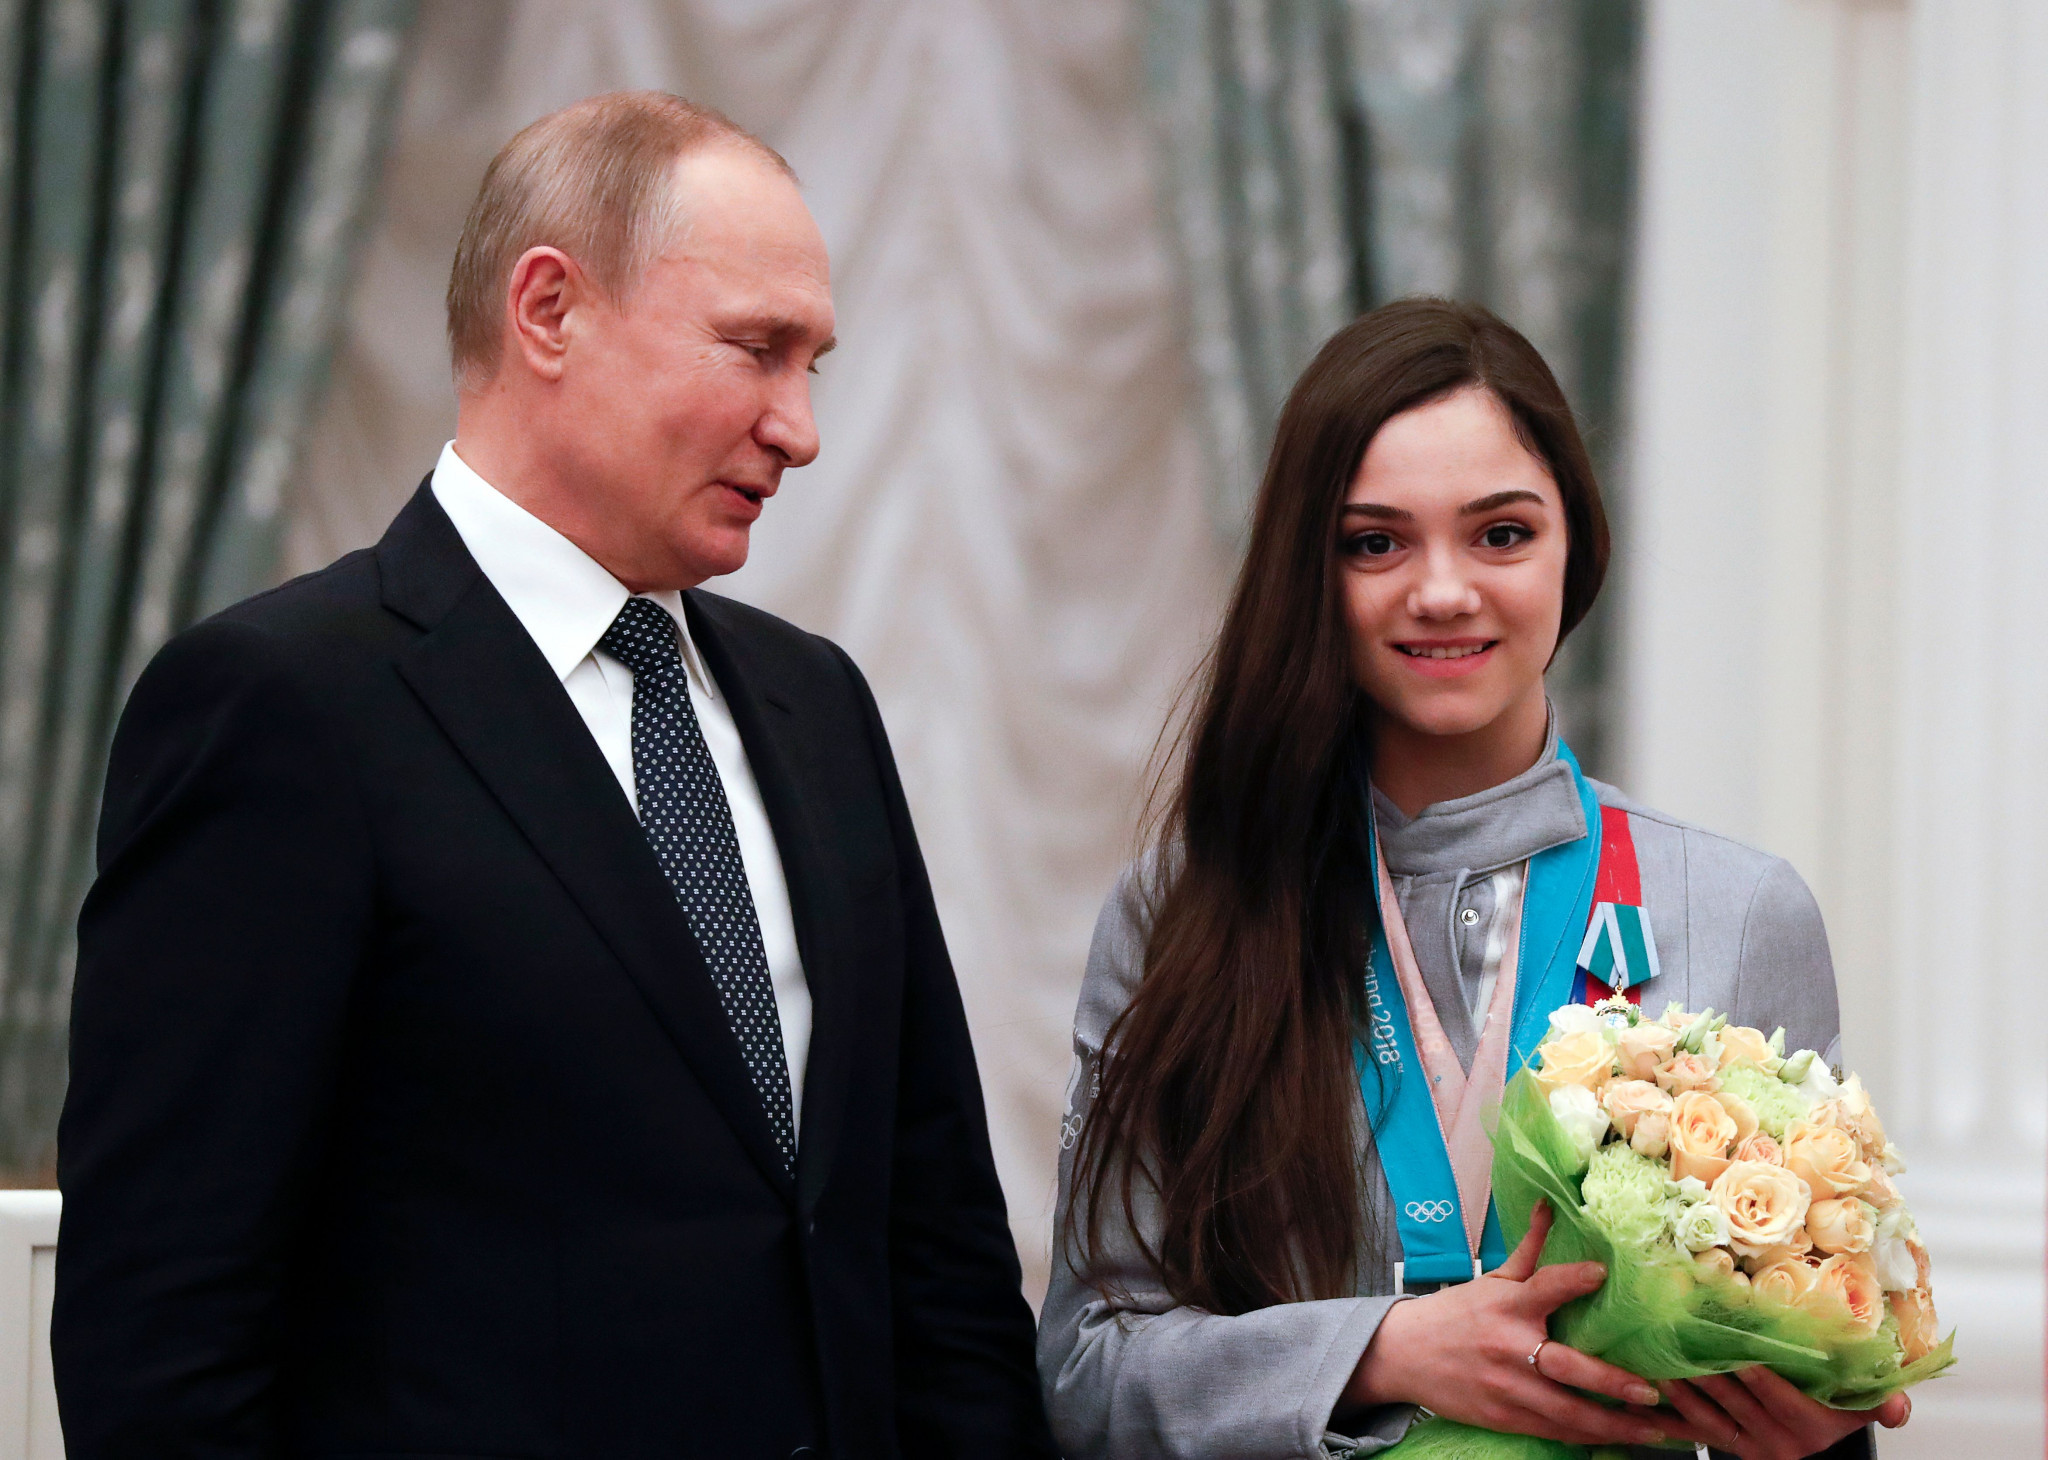 Evgenia Medvedeva, seen here with Russian President Vladimir Putin, spoke in support of the country before Pyeongchang 2018 ©Getty Images